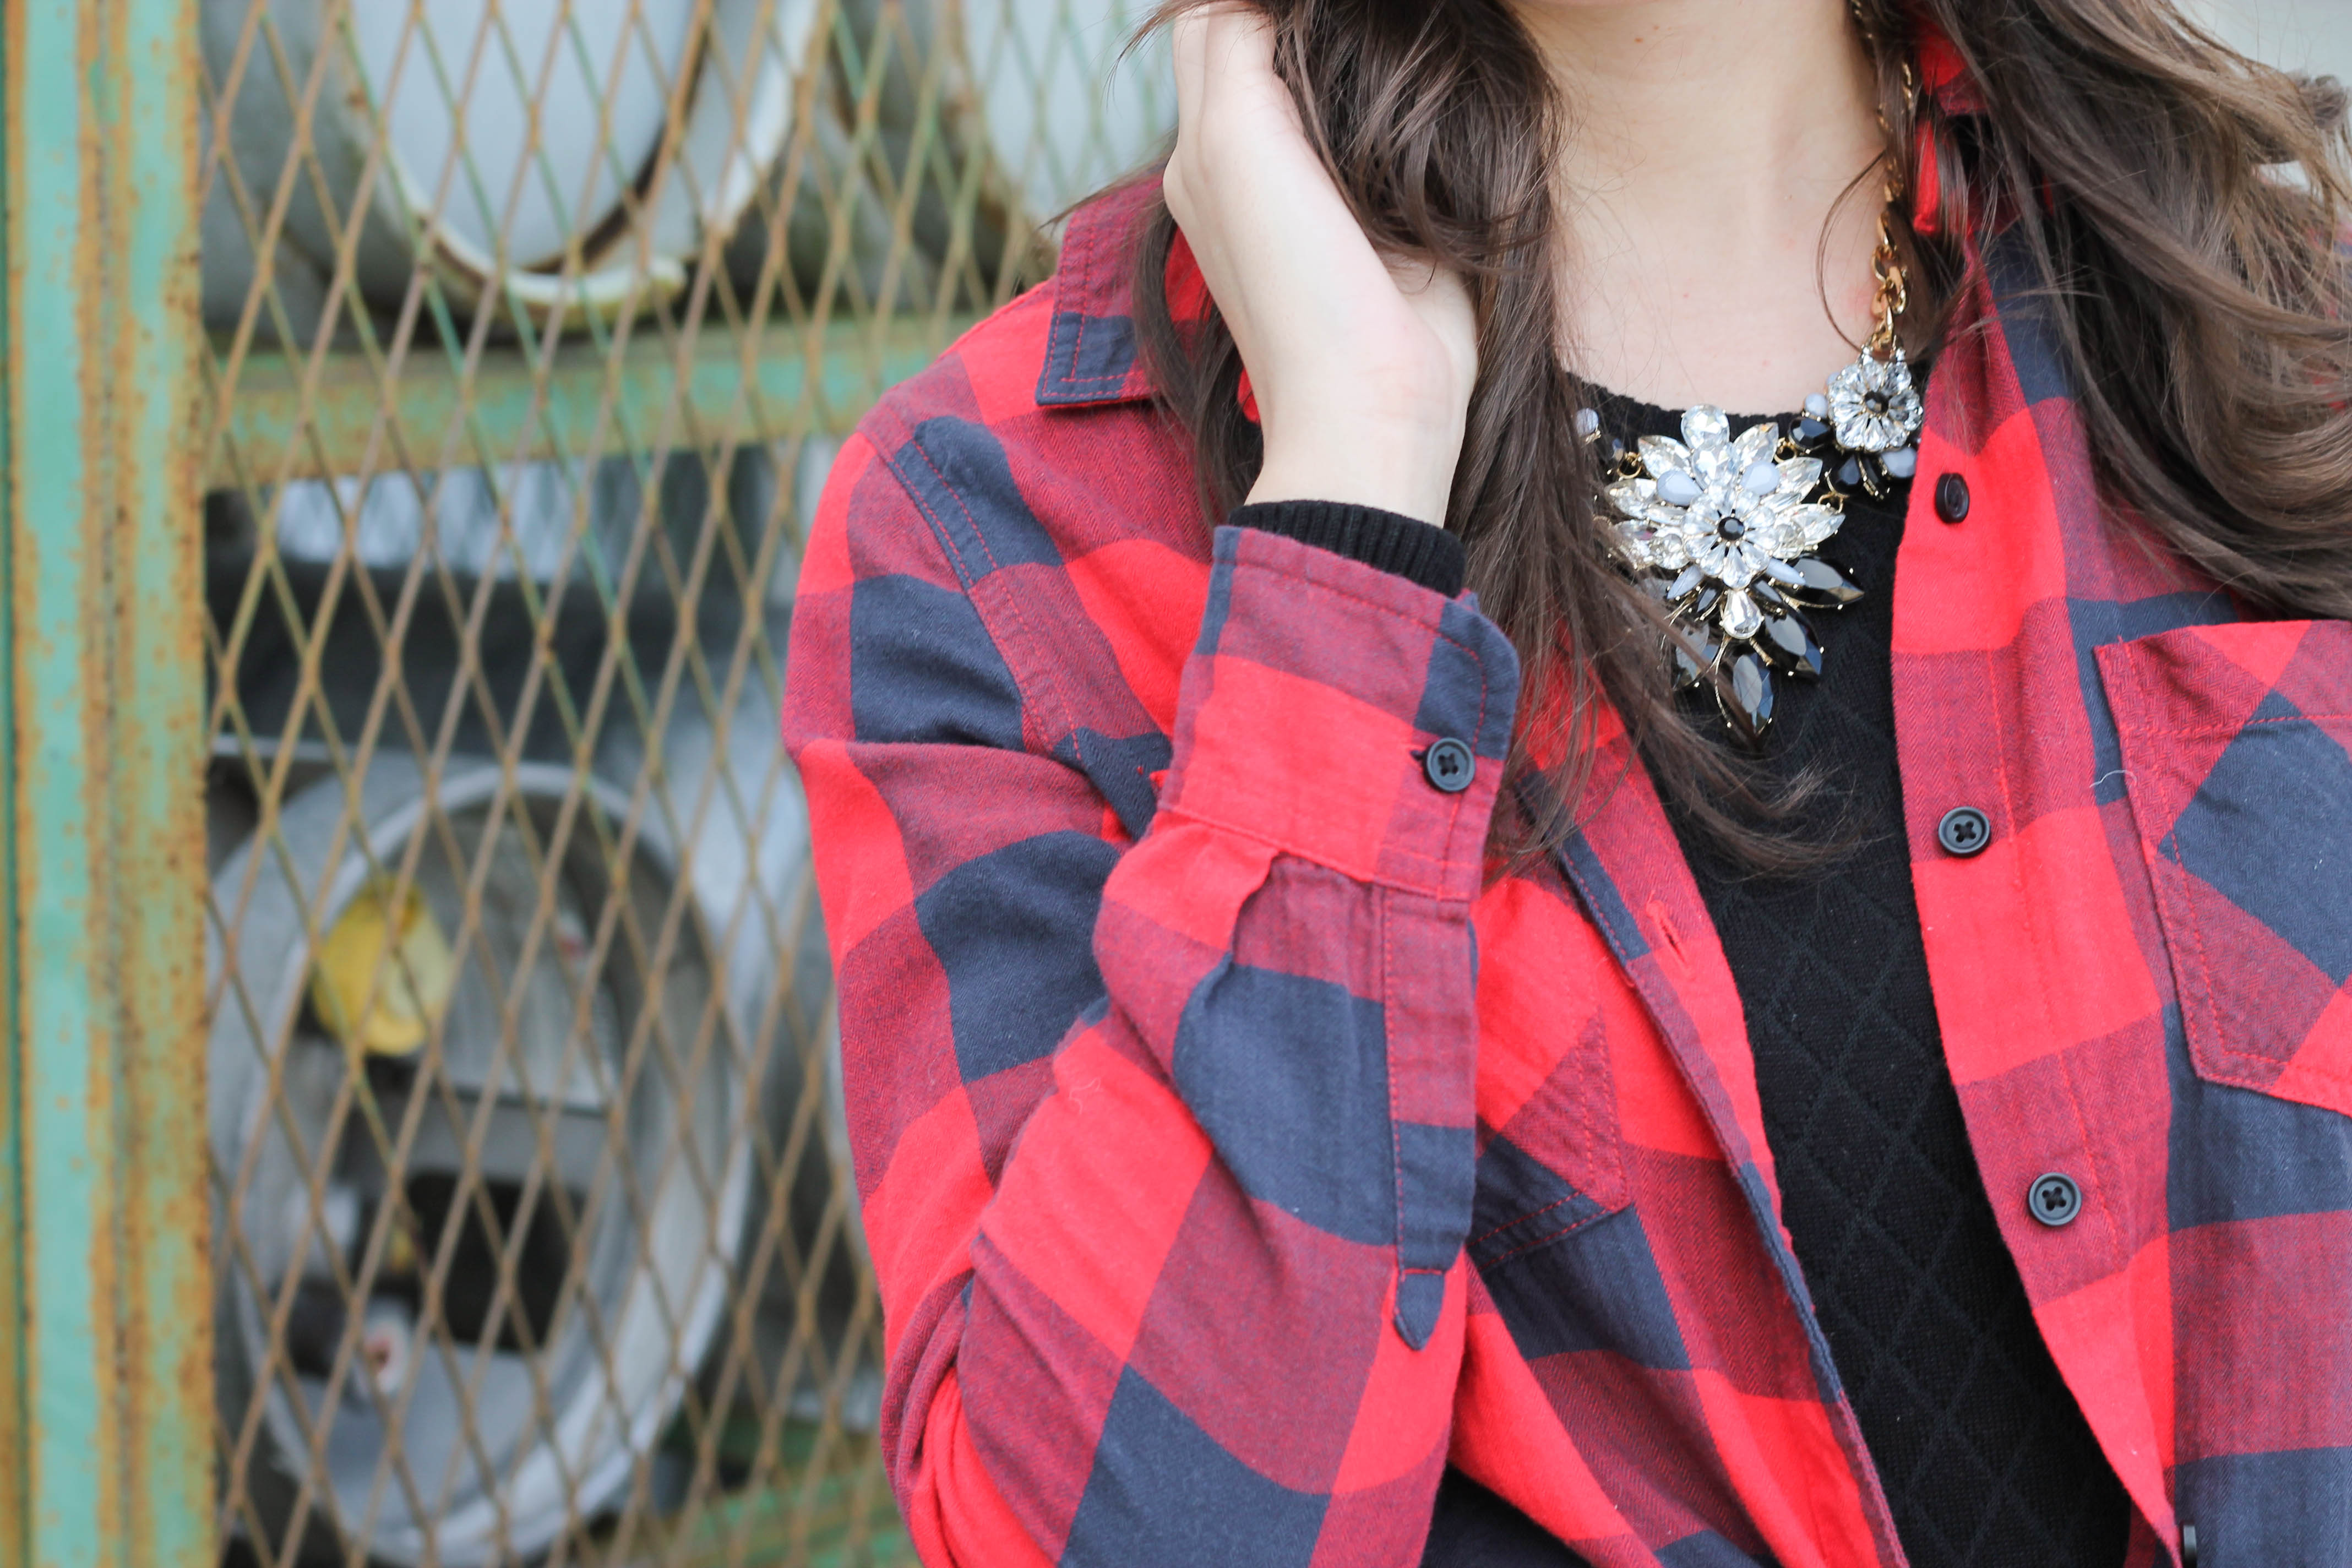 2015-12-06 13.29.59 - Holiday Glam + Buffalo Red Plaid Shirt by New York fashion blogger